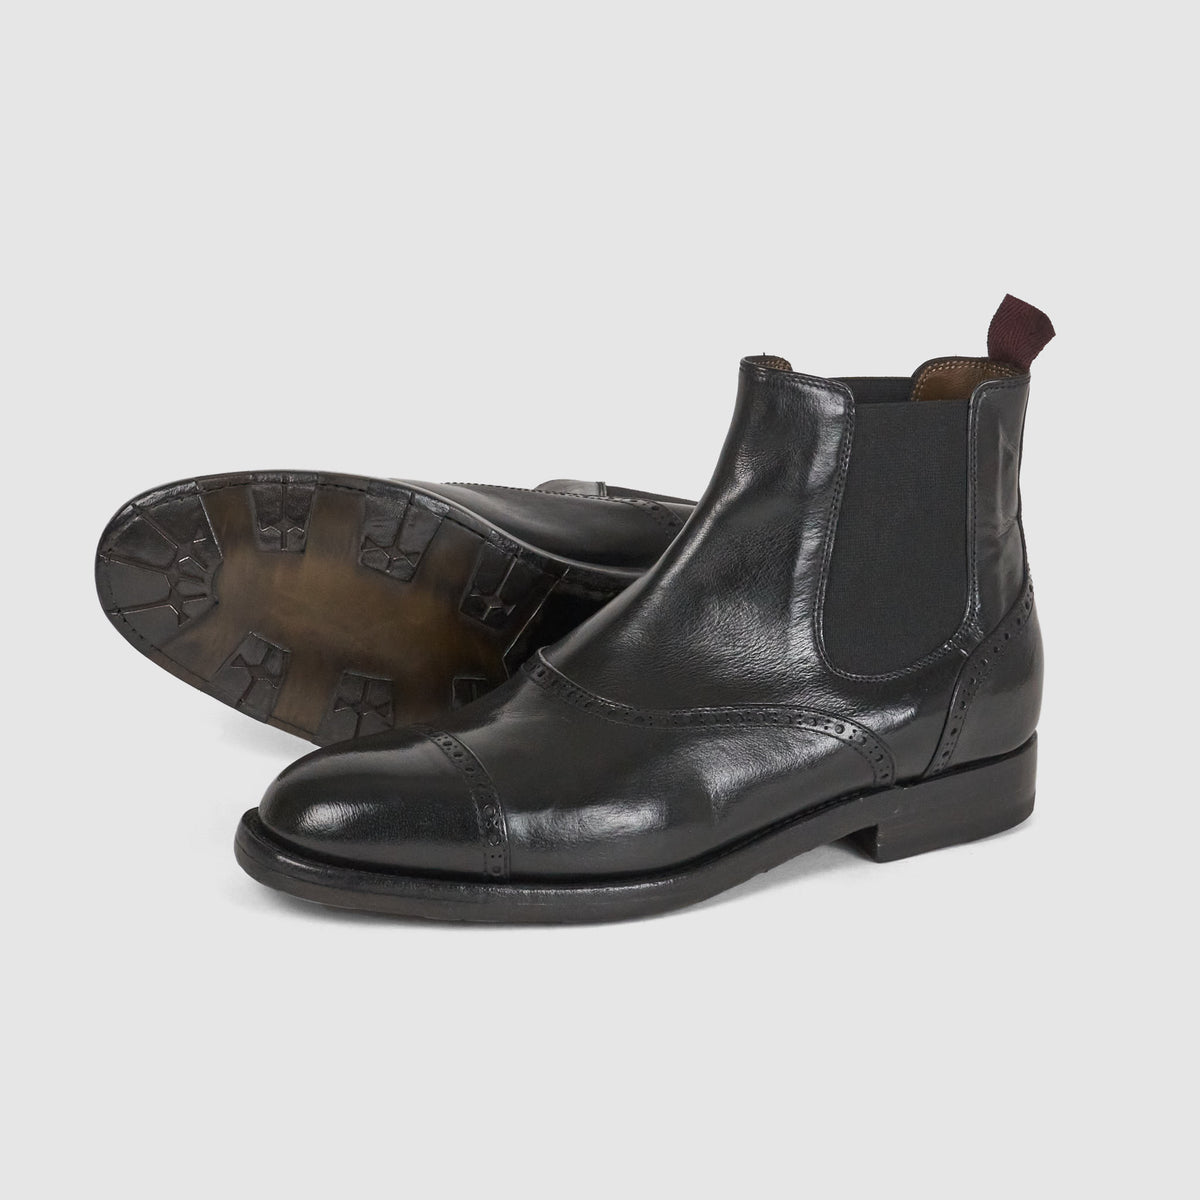 Sassetti Ladies Oxford Brogue Chelsea Boot